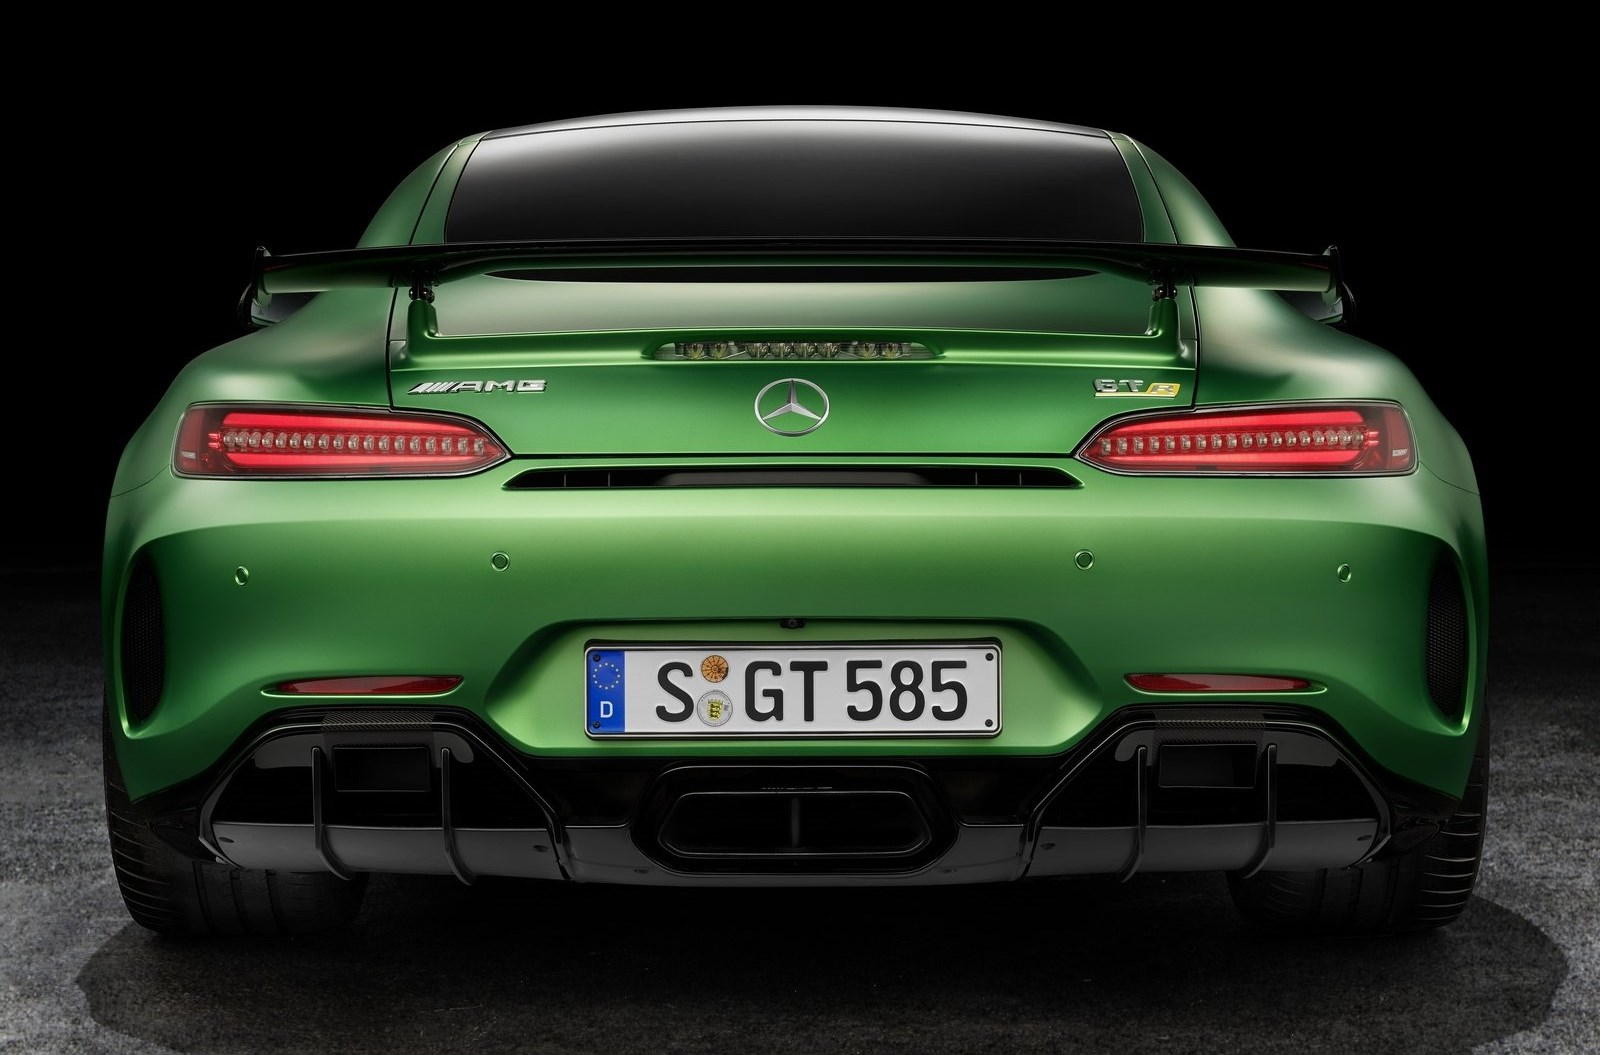 mercedes benz ya vende el amg gt r 585 cv usd 305 900 automotiva. Black Bedroom Furniture Sets. Home Design Ideas